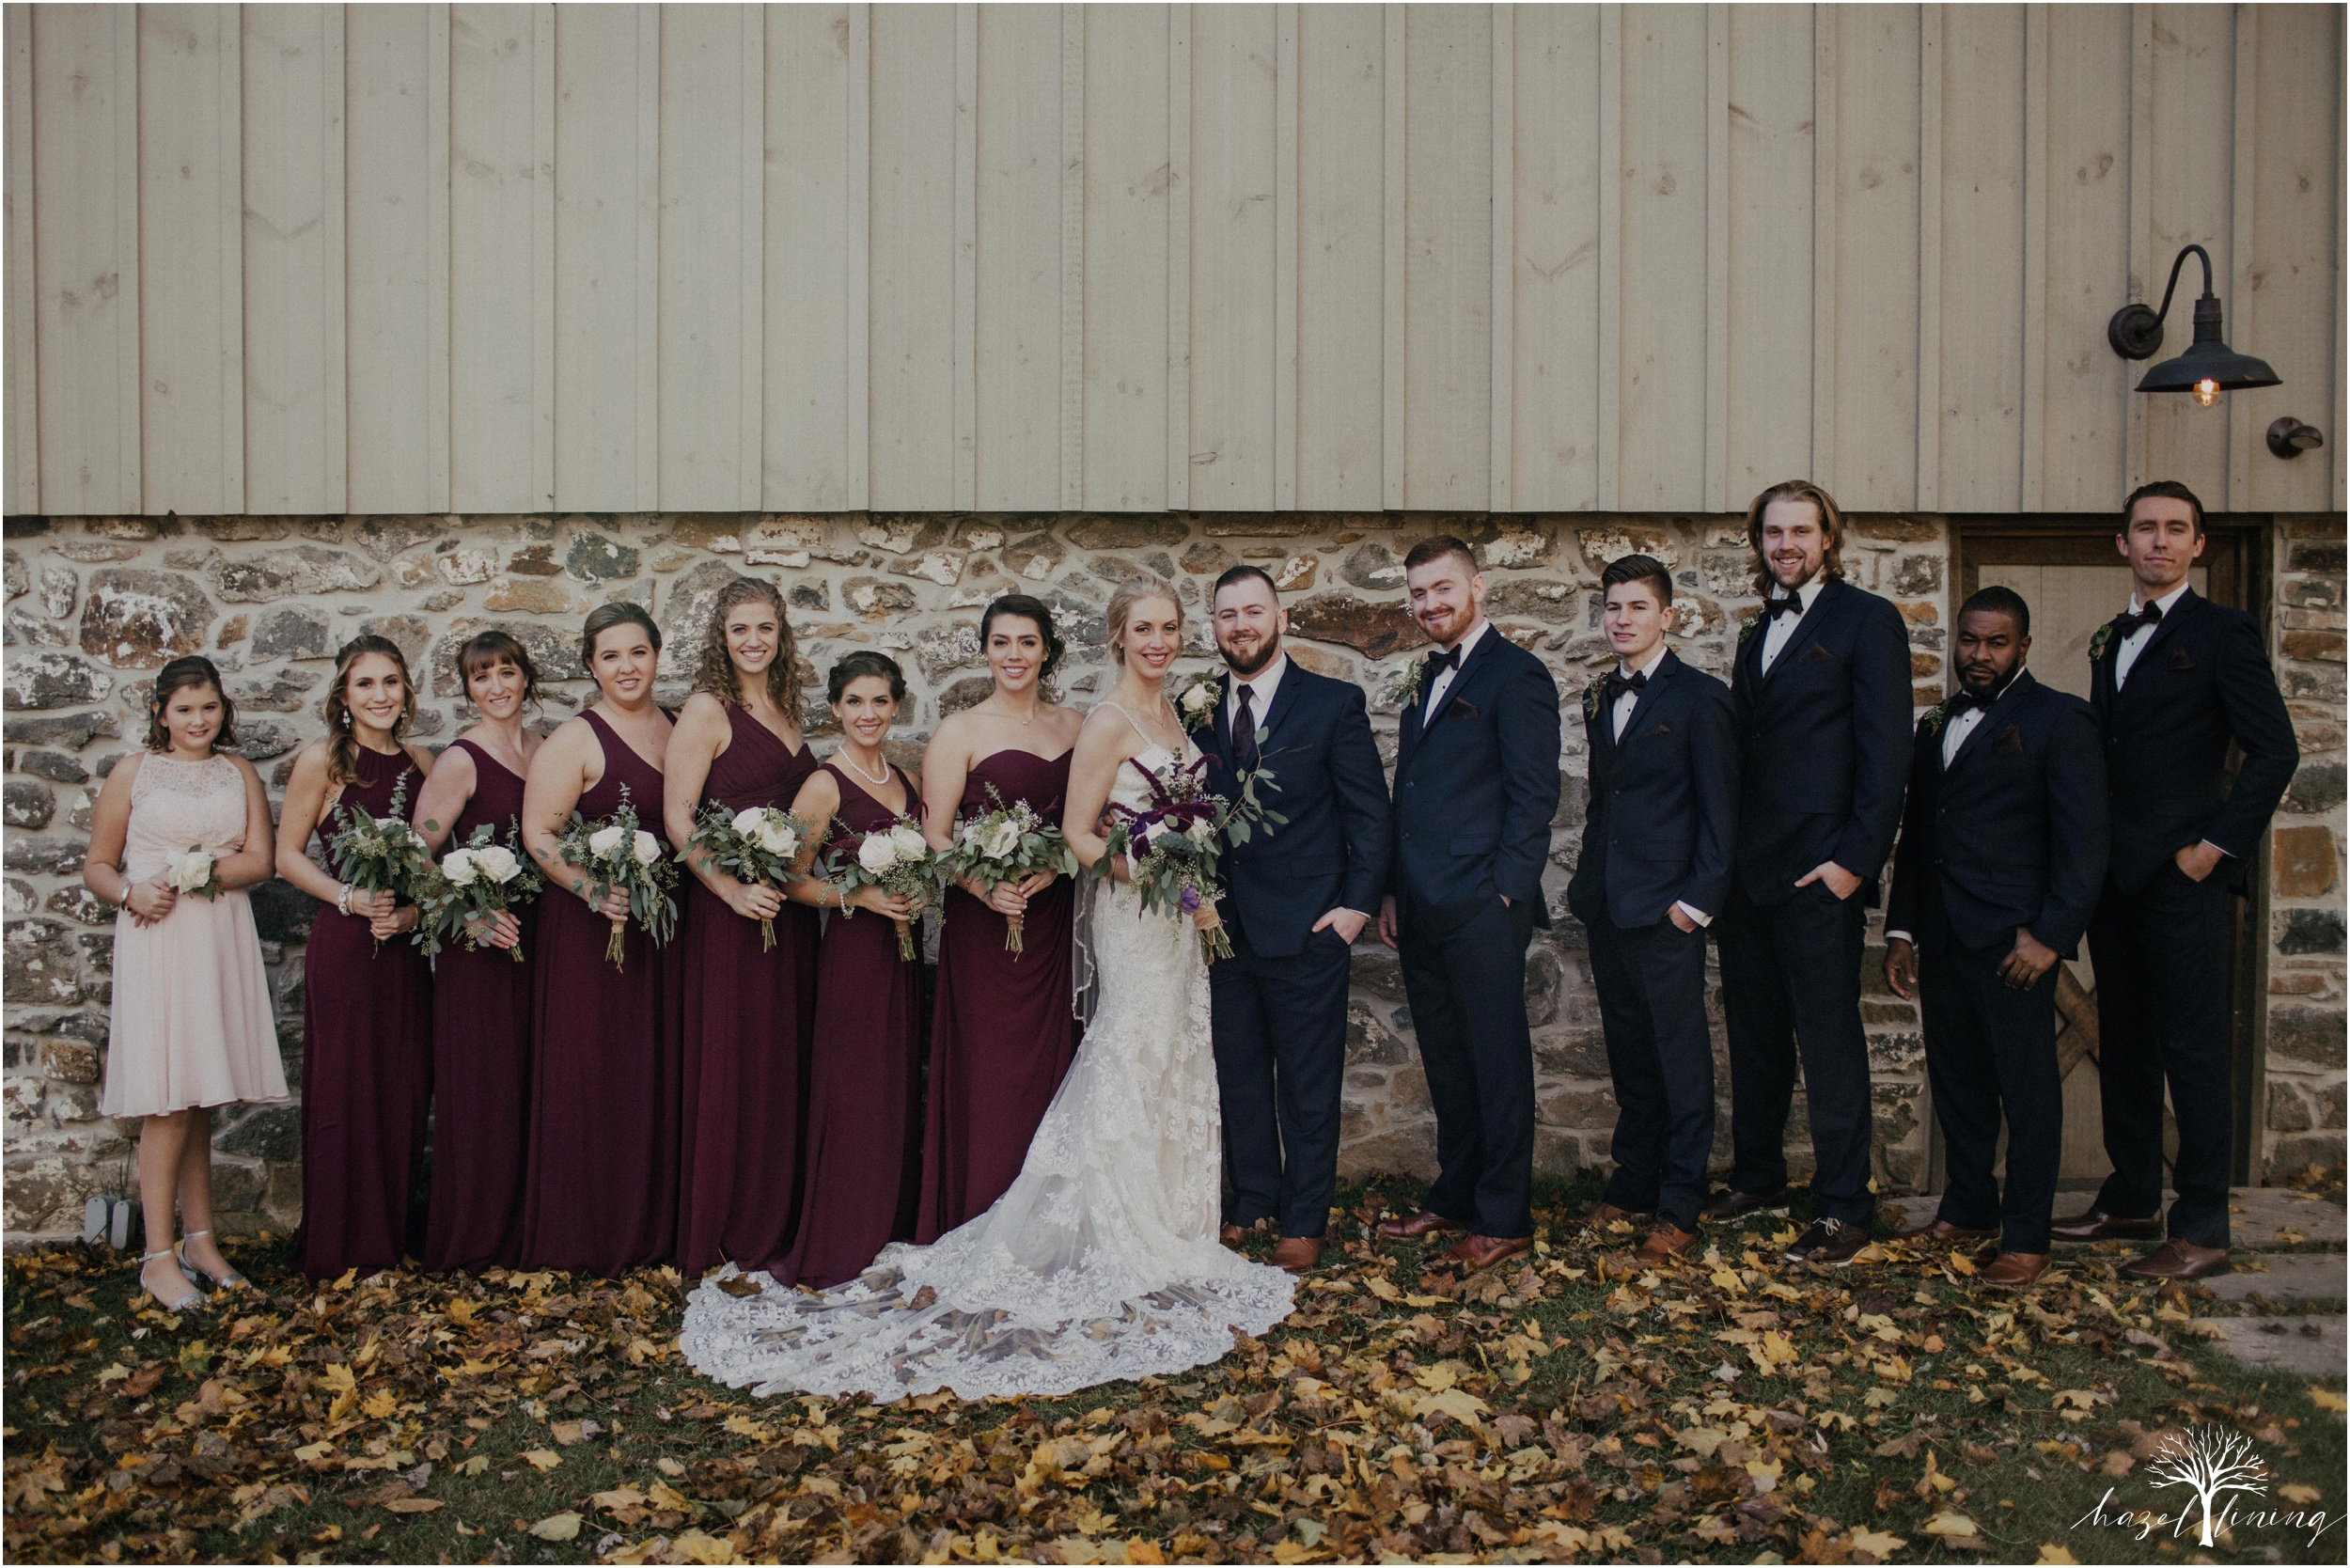 briana-krans-greg-johnston-farm-bakery-and-events-fall-wedding_0059.jpg